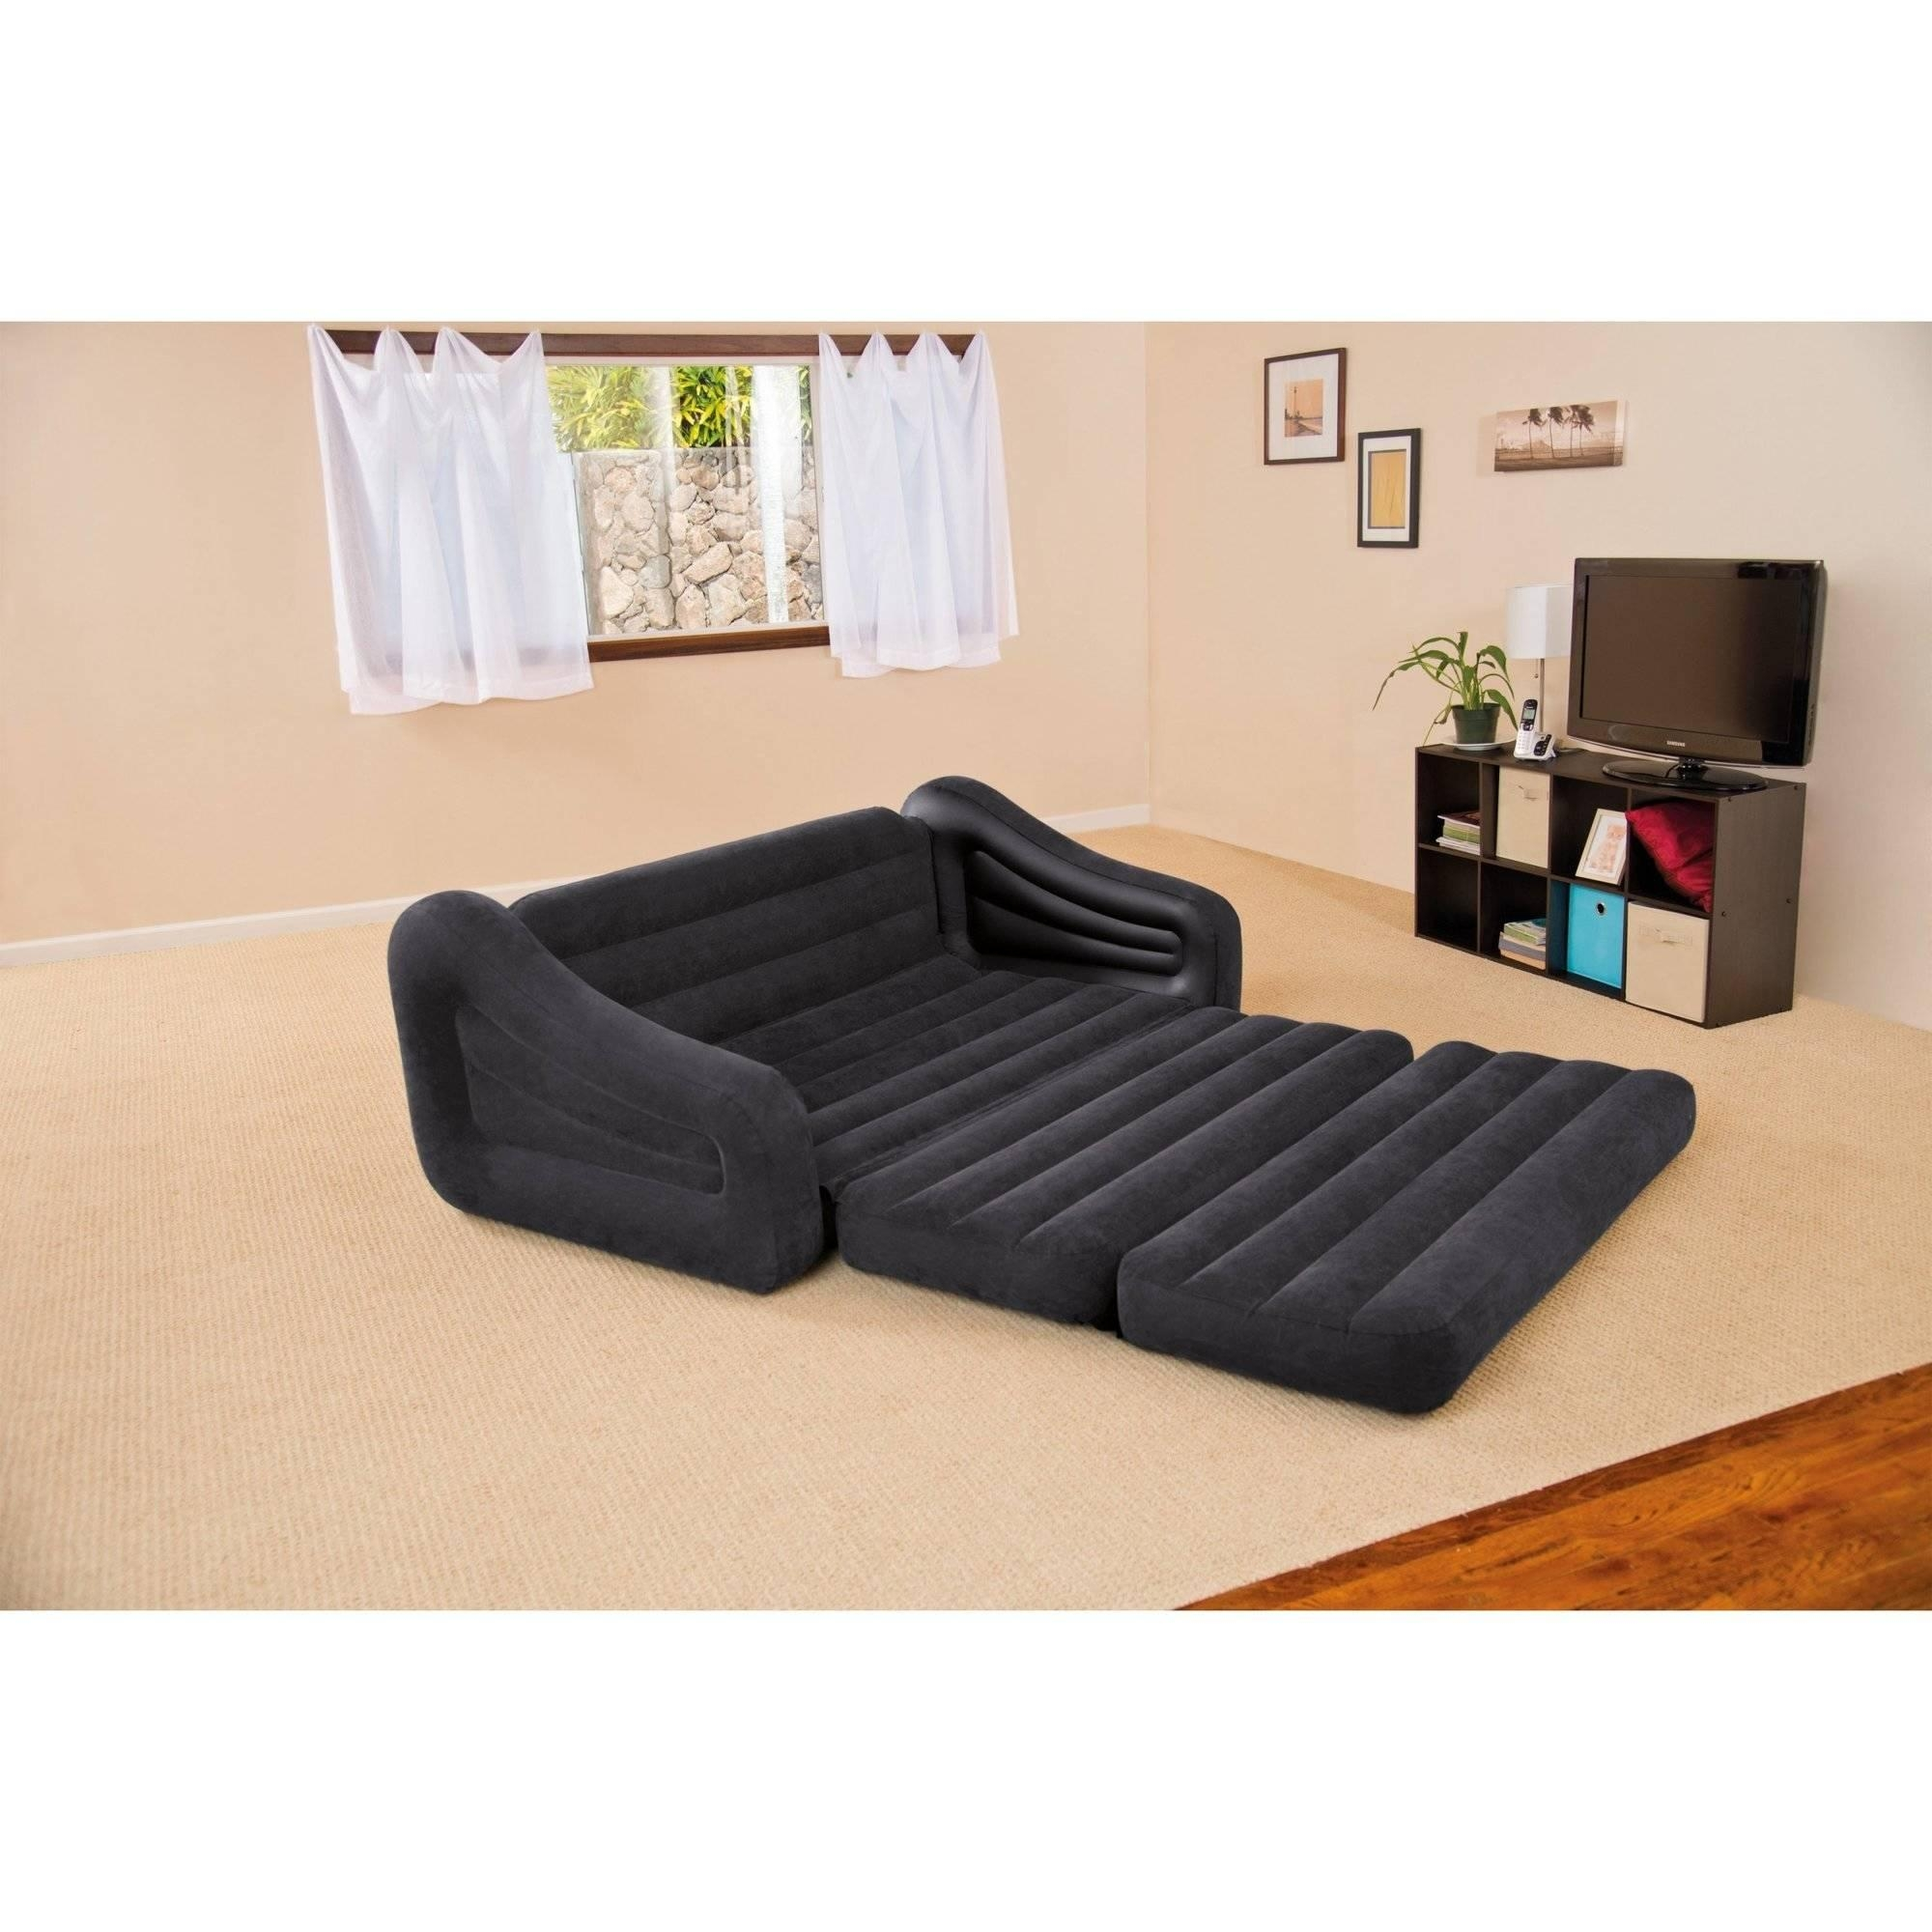 Intex Queen Inflatable Pull Out Sofa Bed – Walmart With Regard To Sleep Number Sofa Beds (Image 6 of 20)